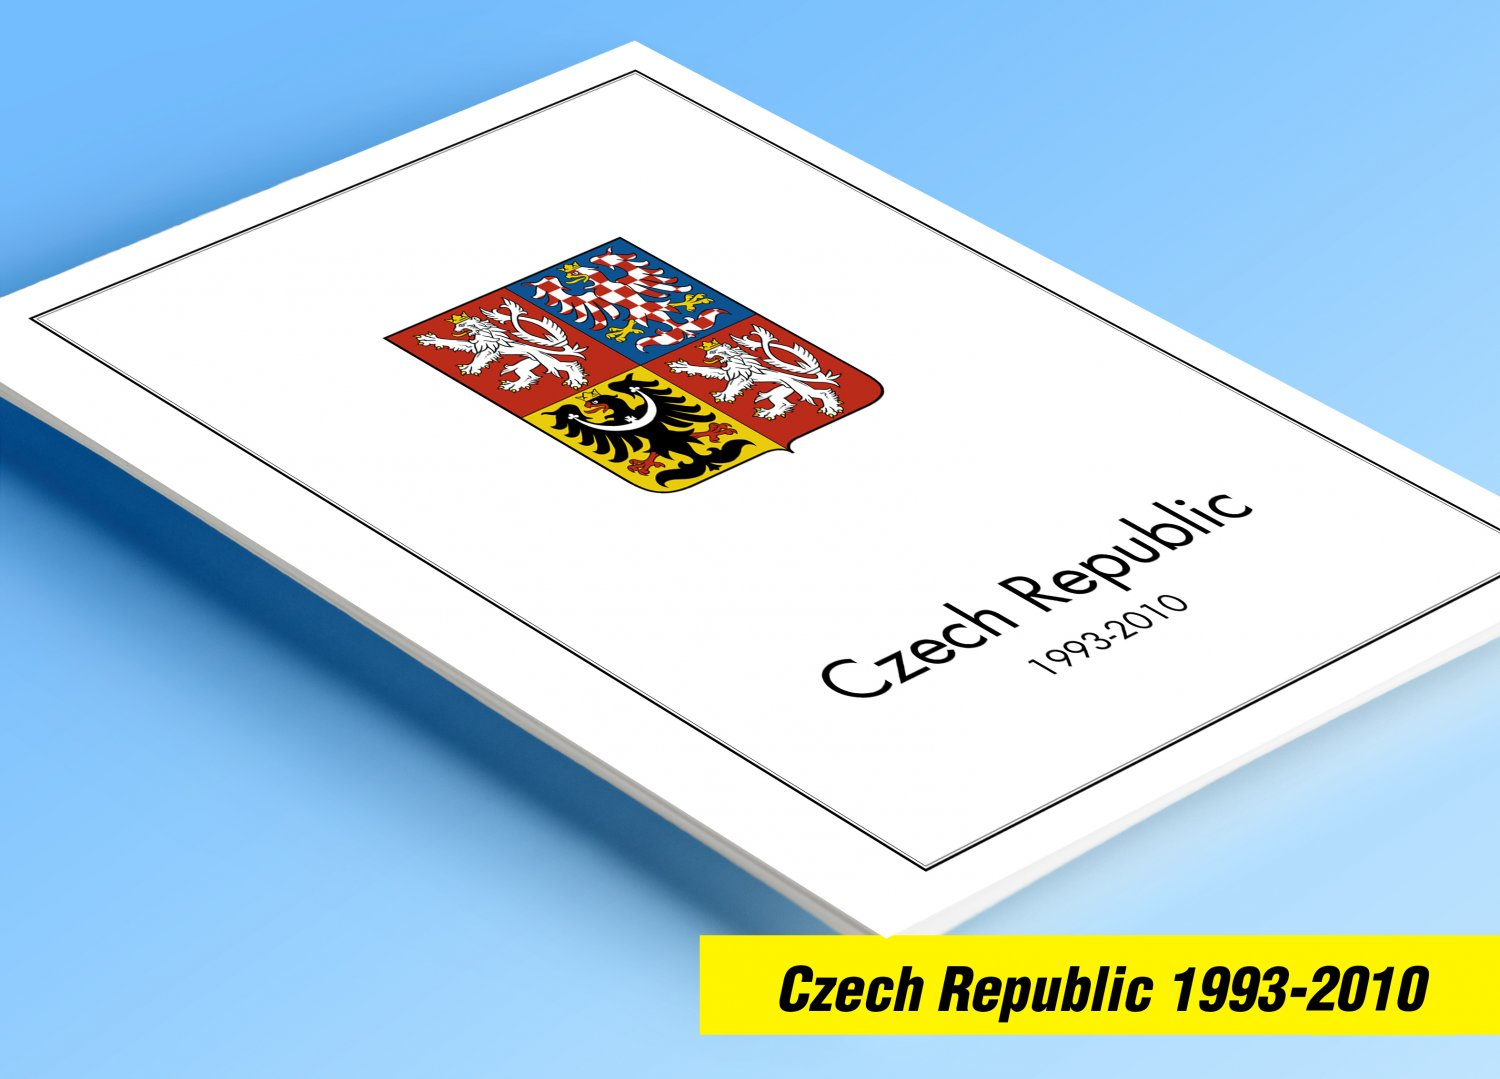 COLOR PRINTED CZECH REPUBLIC 1993-2010 STAMP ALBUM PAGES (90 illustrated pages)